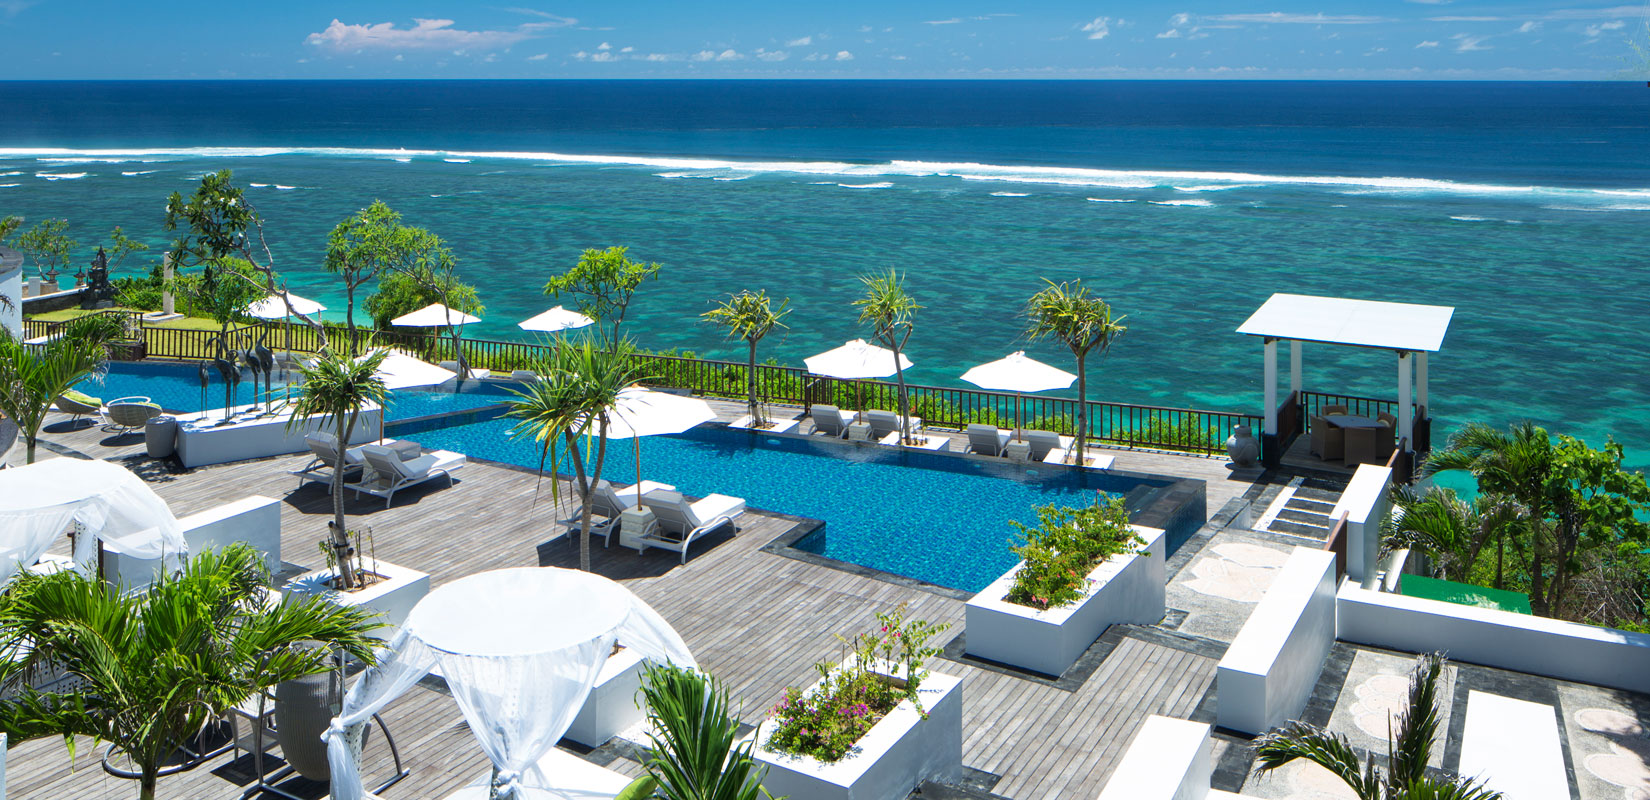 Five of the most luxurious resorts and retreats in bali for The best resort in bali